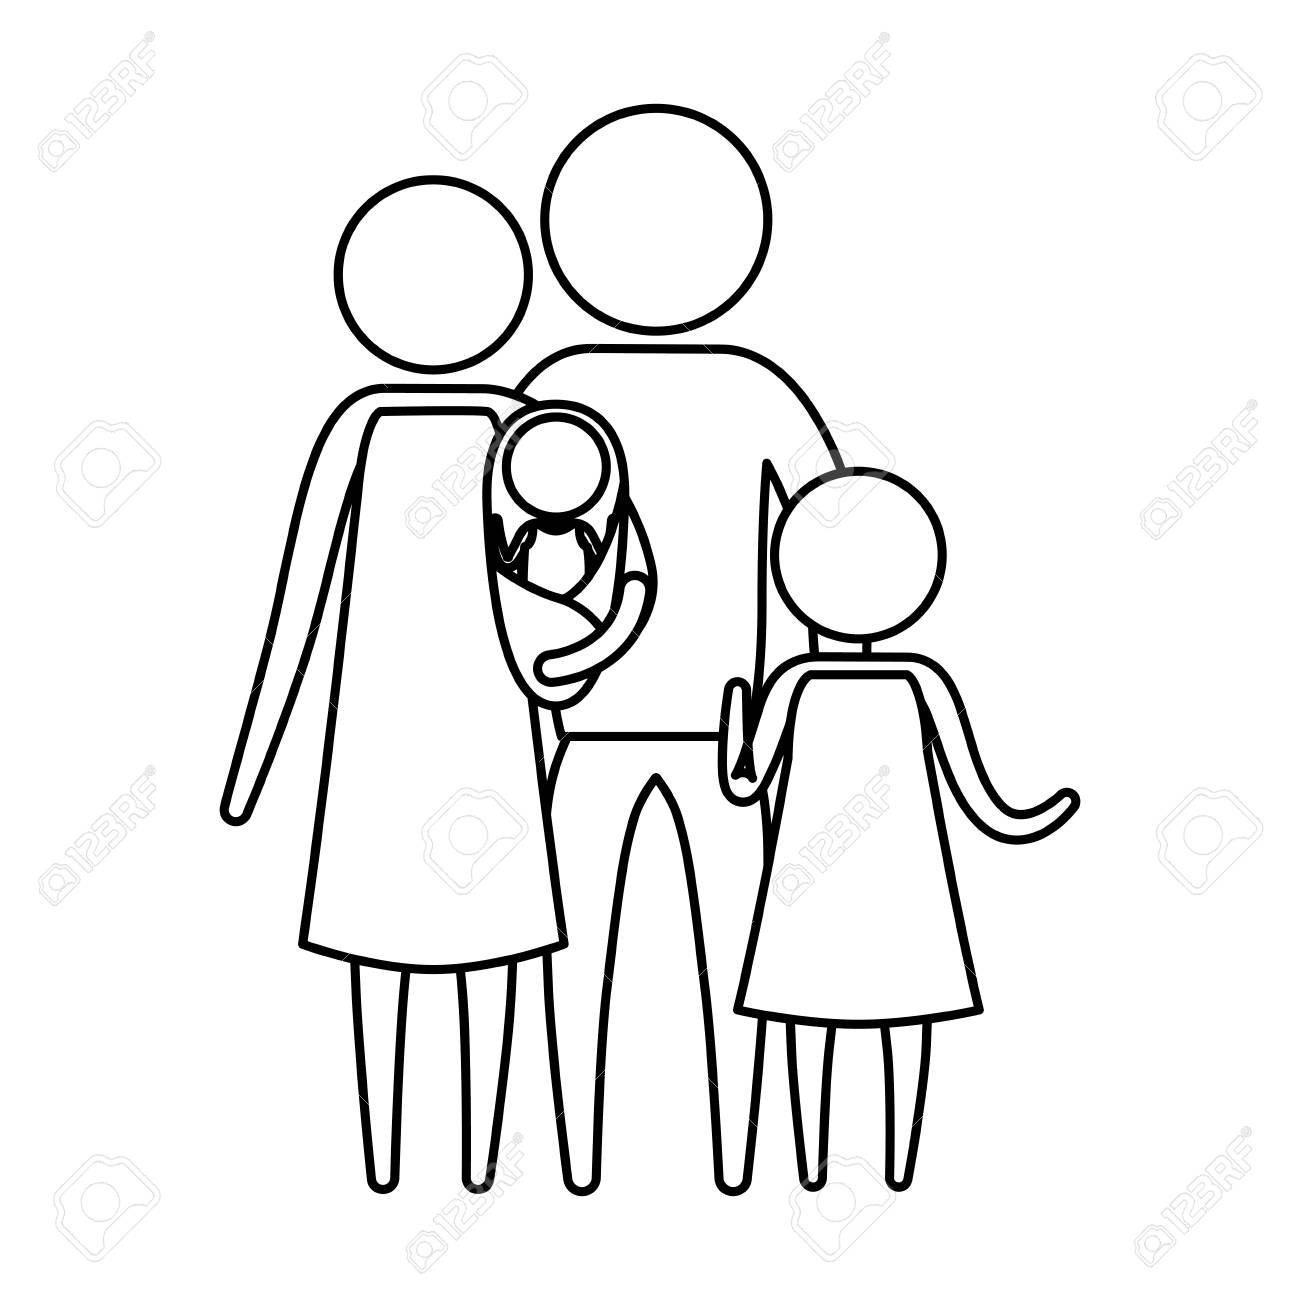 Sketch Silhouette Of Pictogram Parents With A Baby And Little